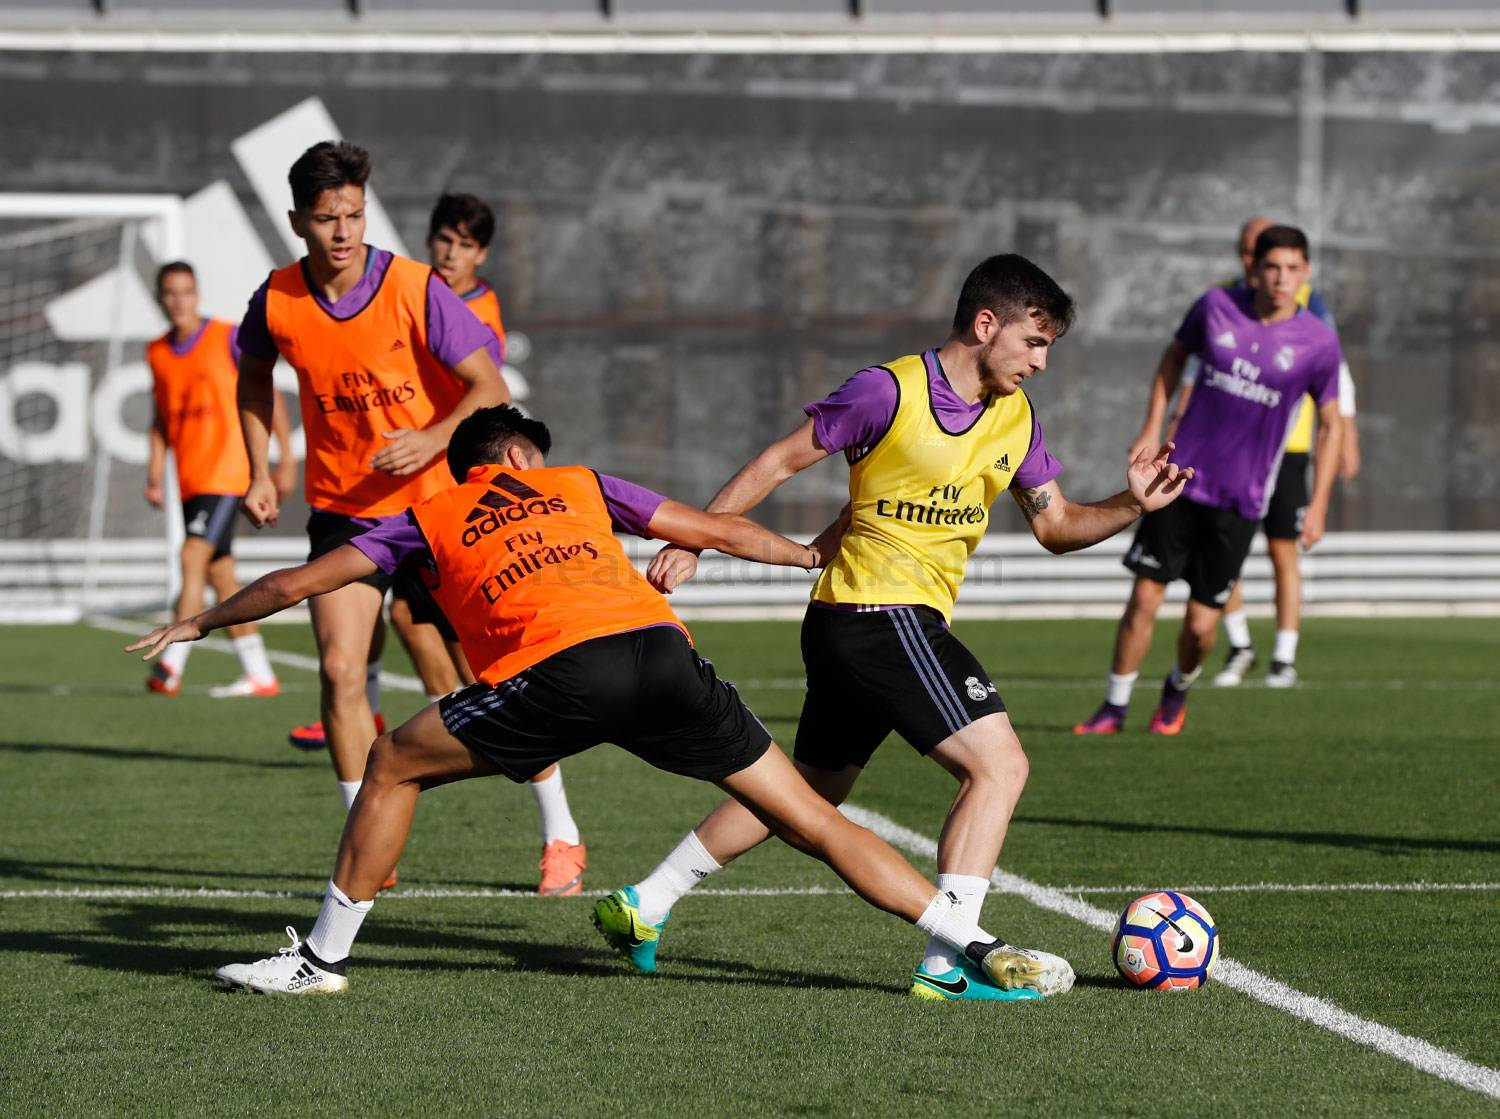 Real Madrid - Entrenamiento del Real Madrid - 05-10-2016